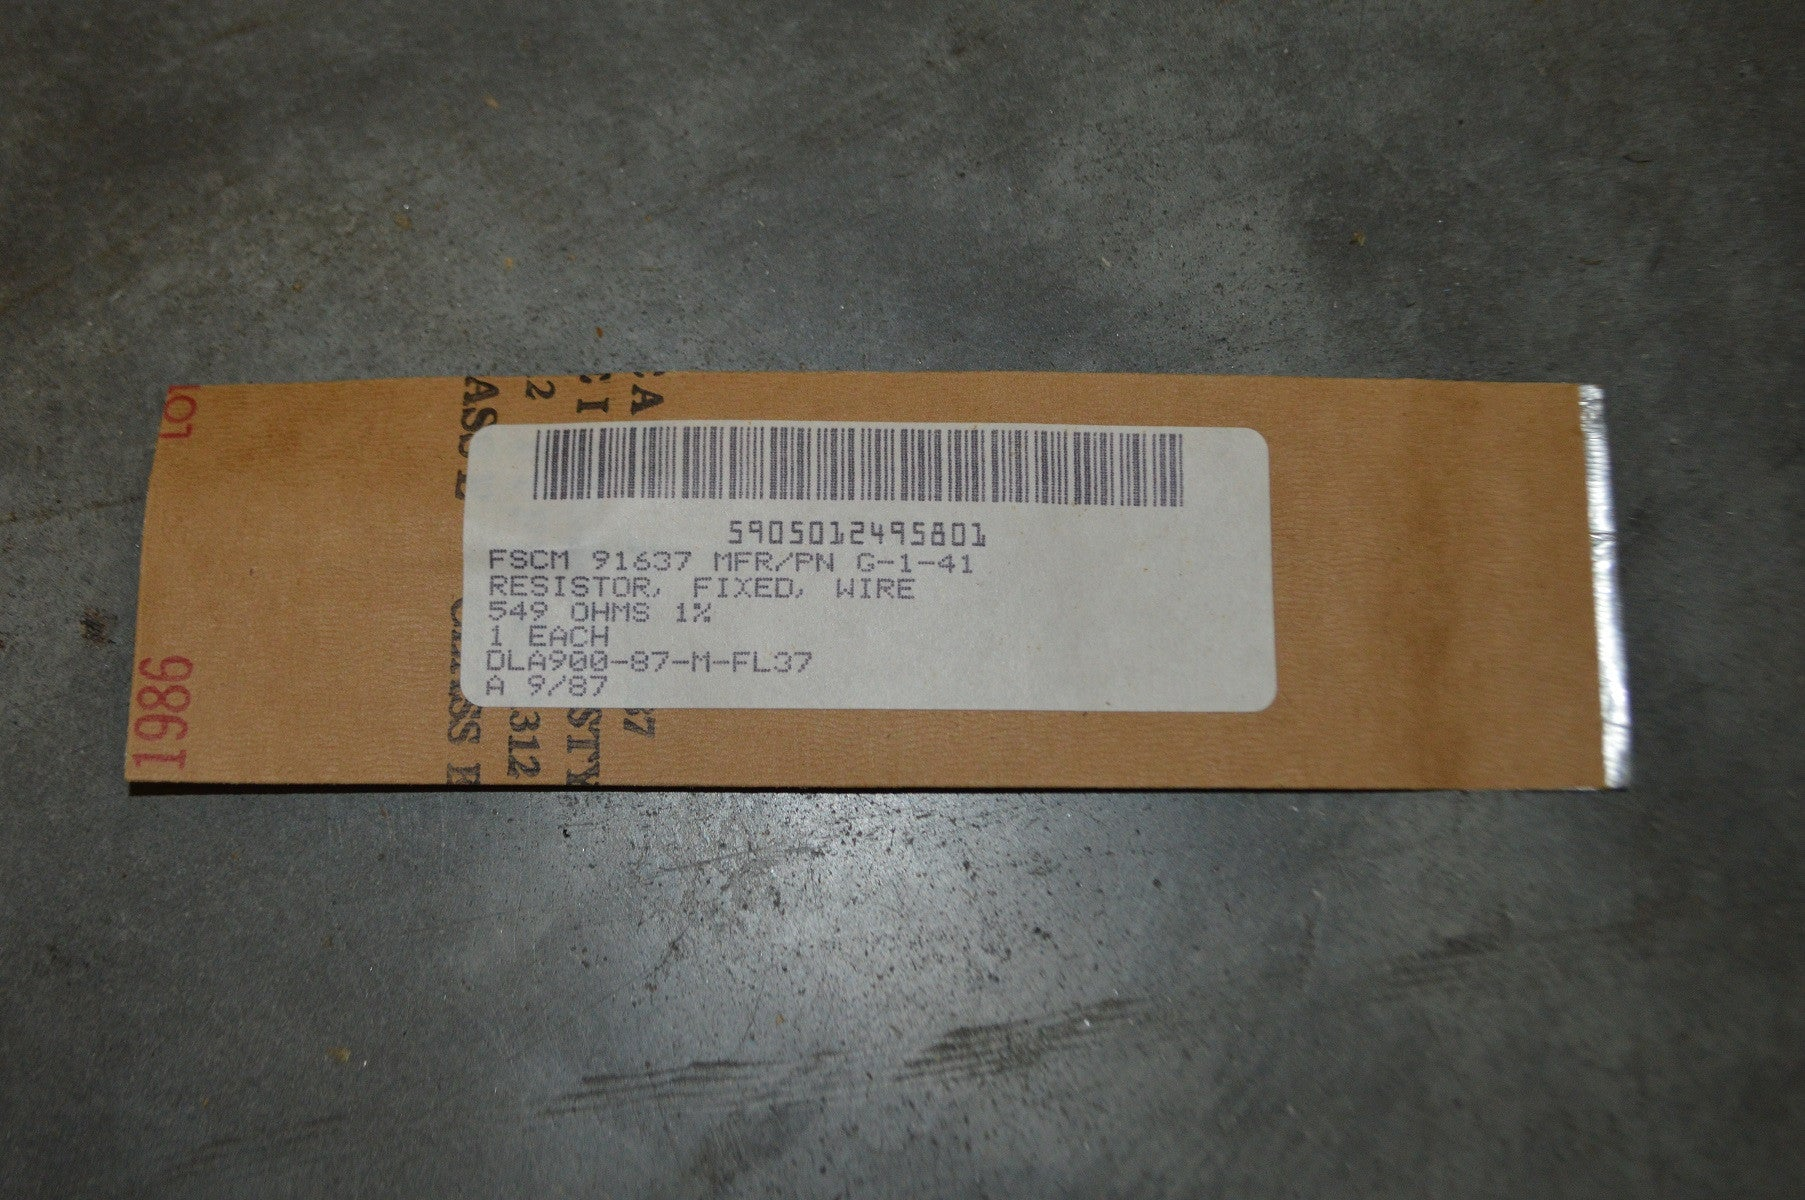 Fixed Wire Resistor NSN:5905-01-249-5801 P/N:J350P5490A